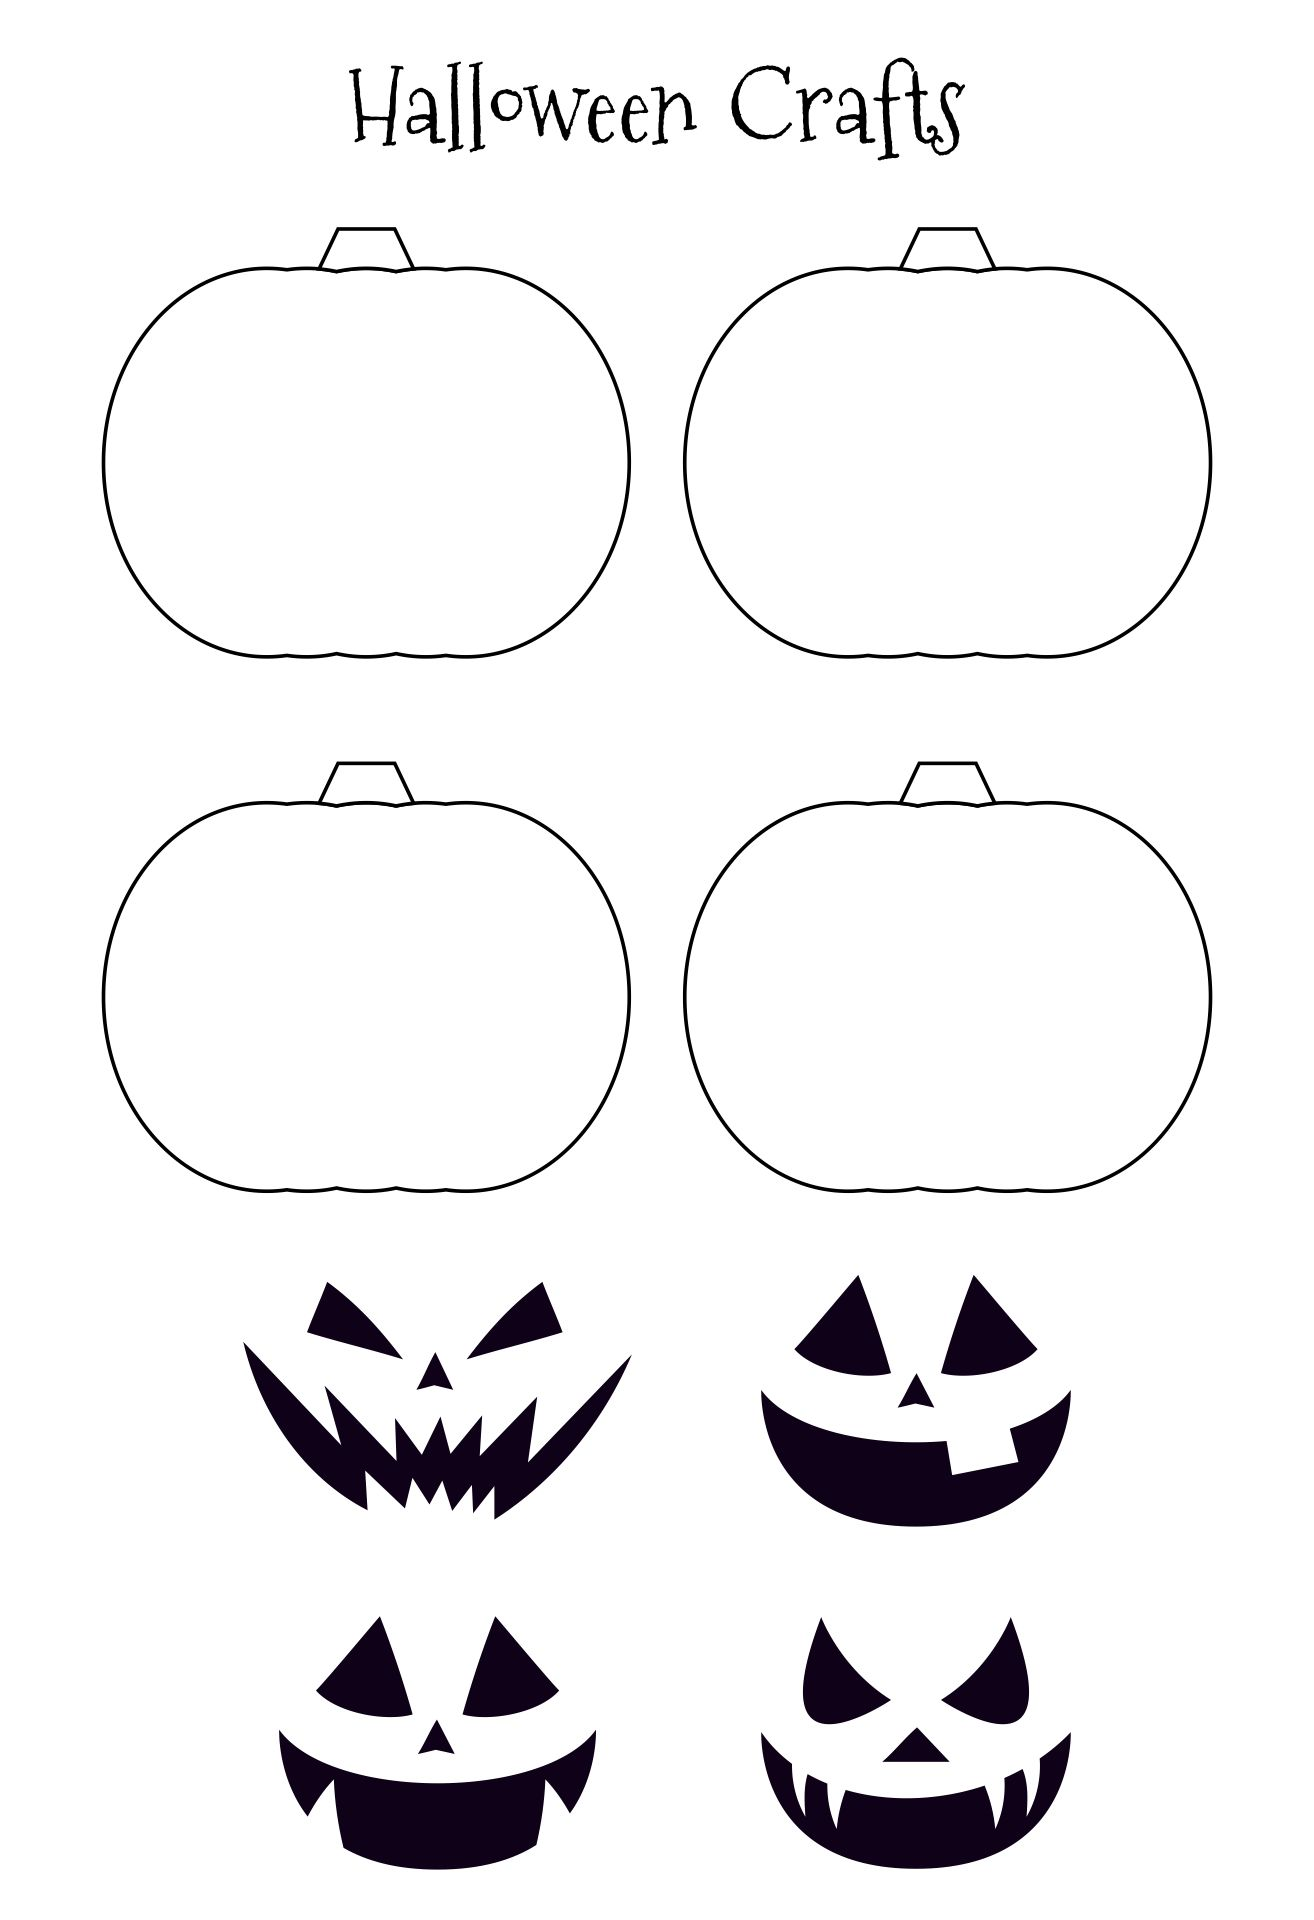 6 Images of Printable Halloween Projects